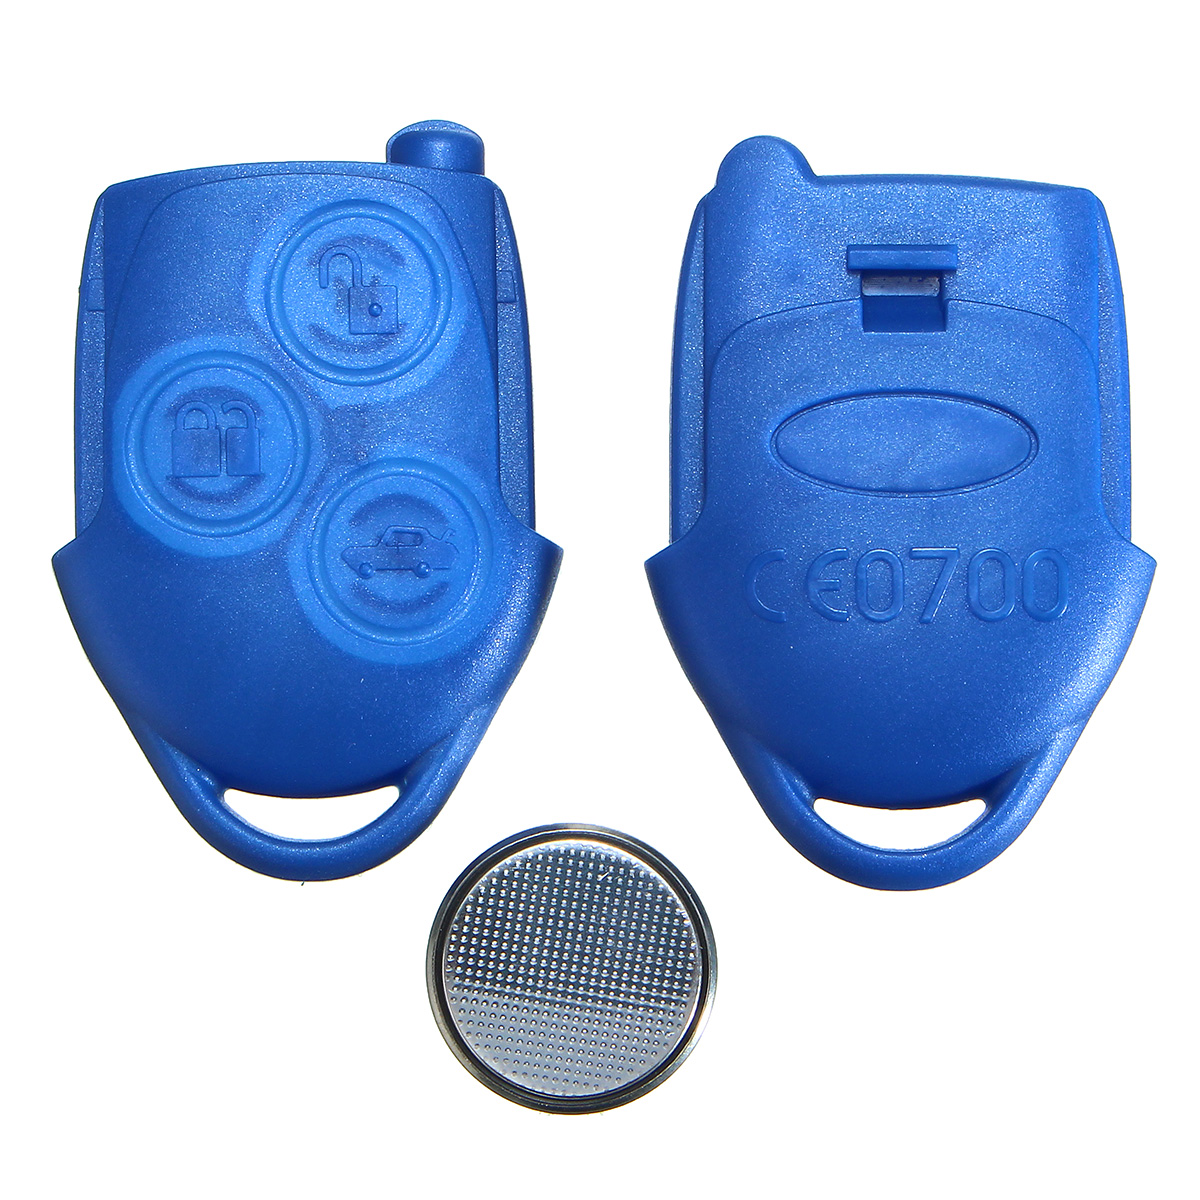 2 New Replacement Keyless Entry Blue Remote Key Fob For Ford Shell Case